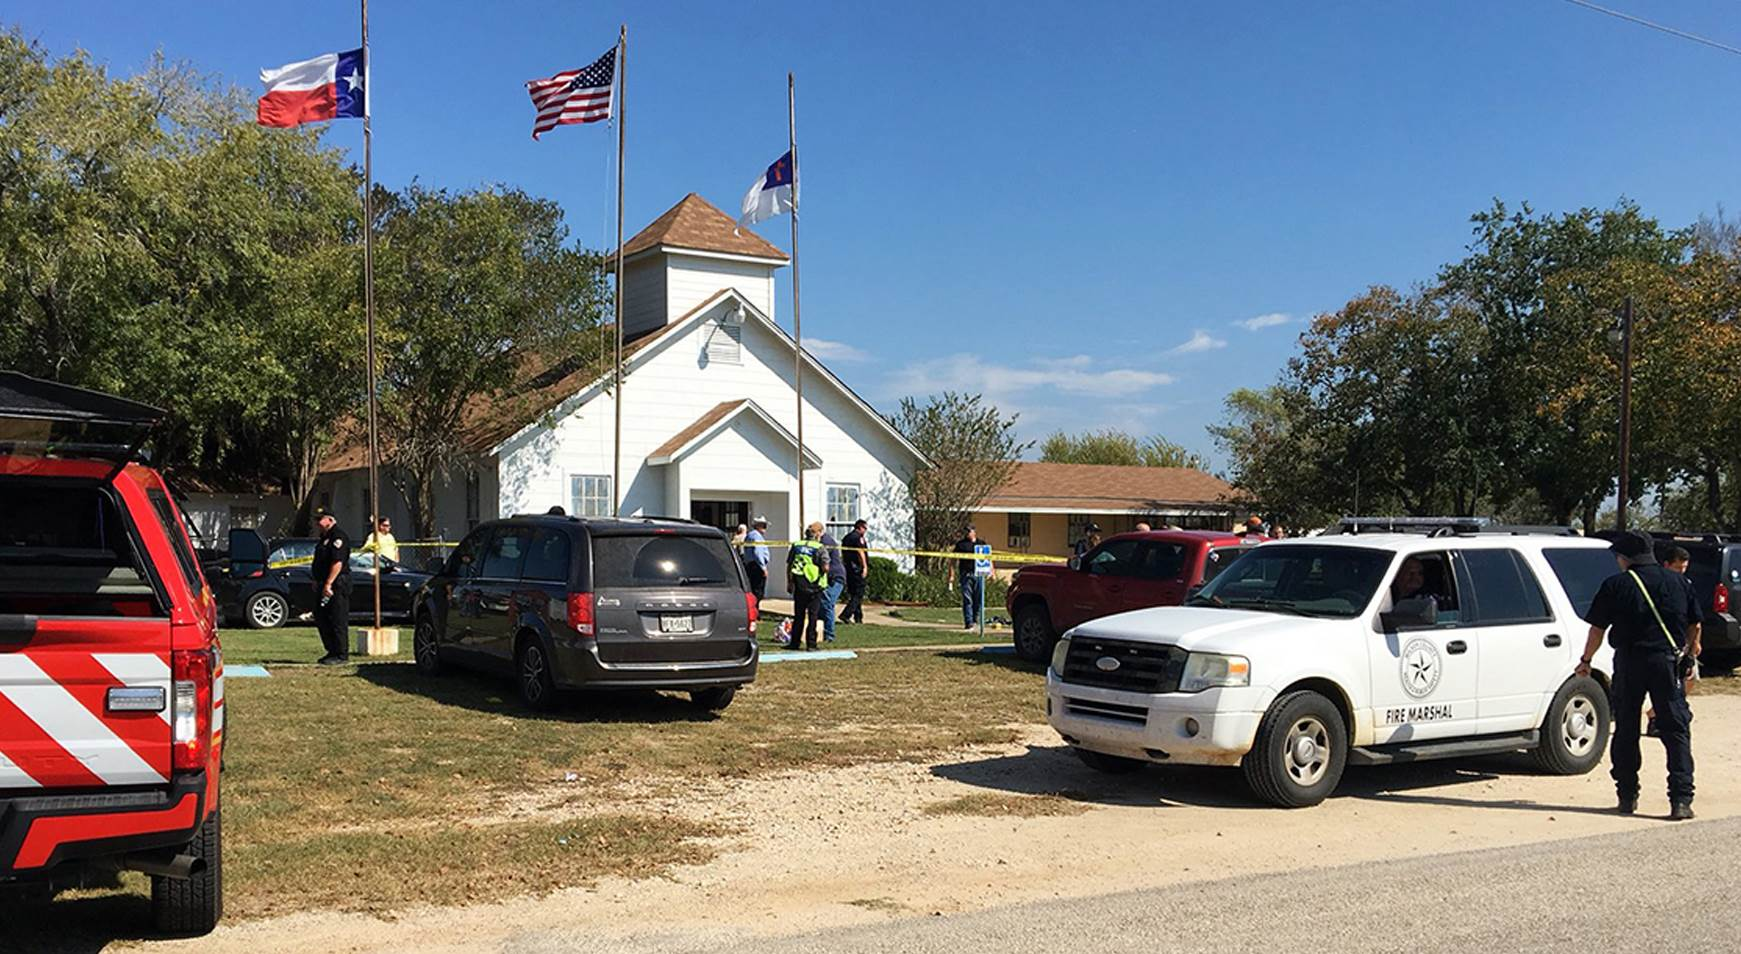 The Texas Church Shooting Aftermath, by Sophie in Texas